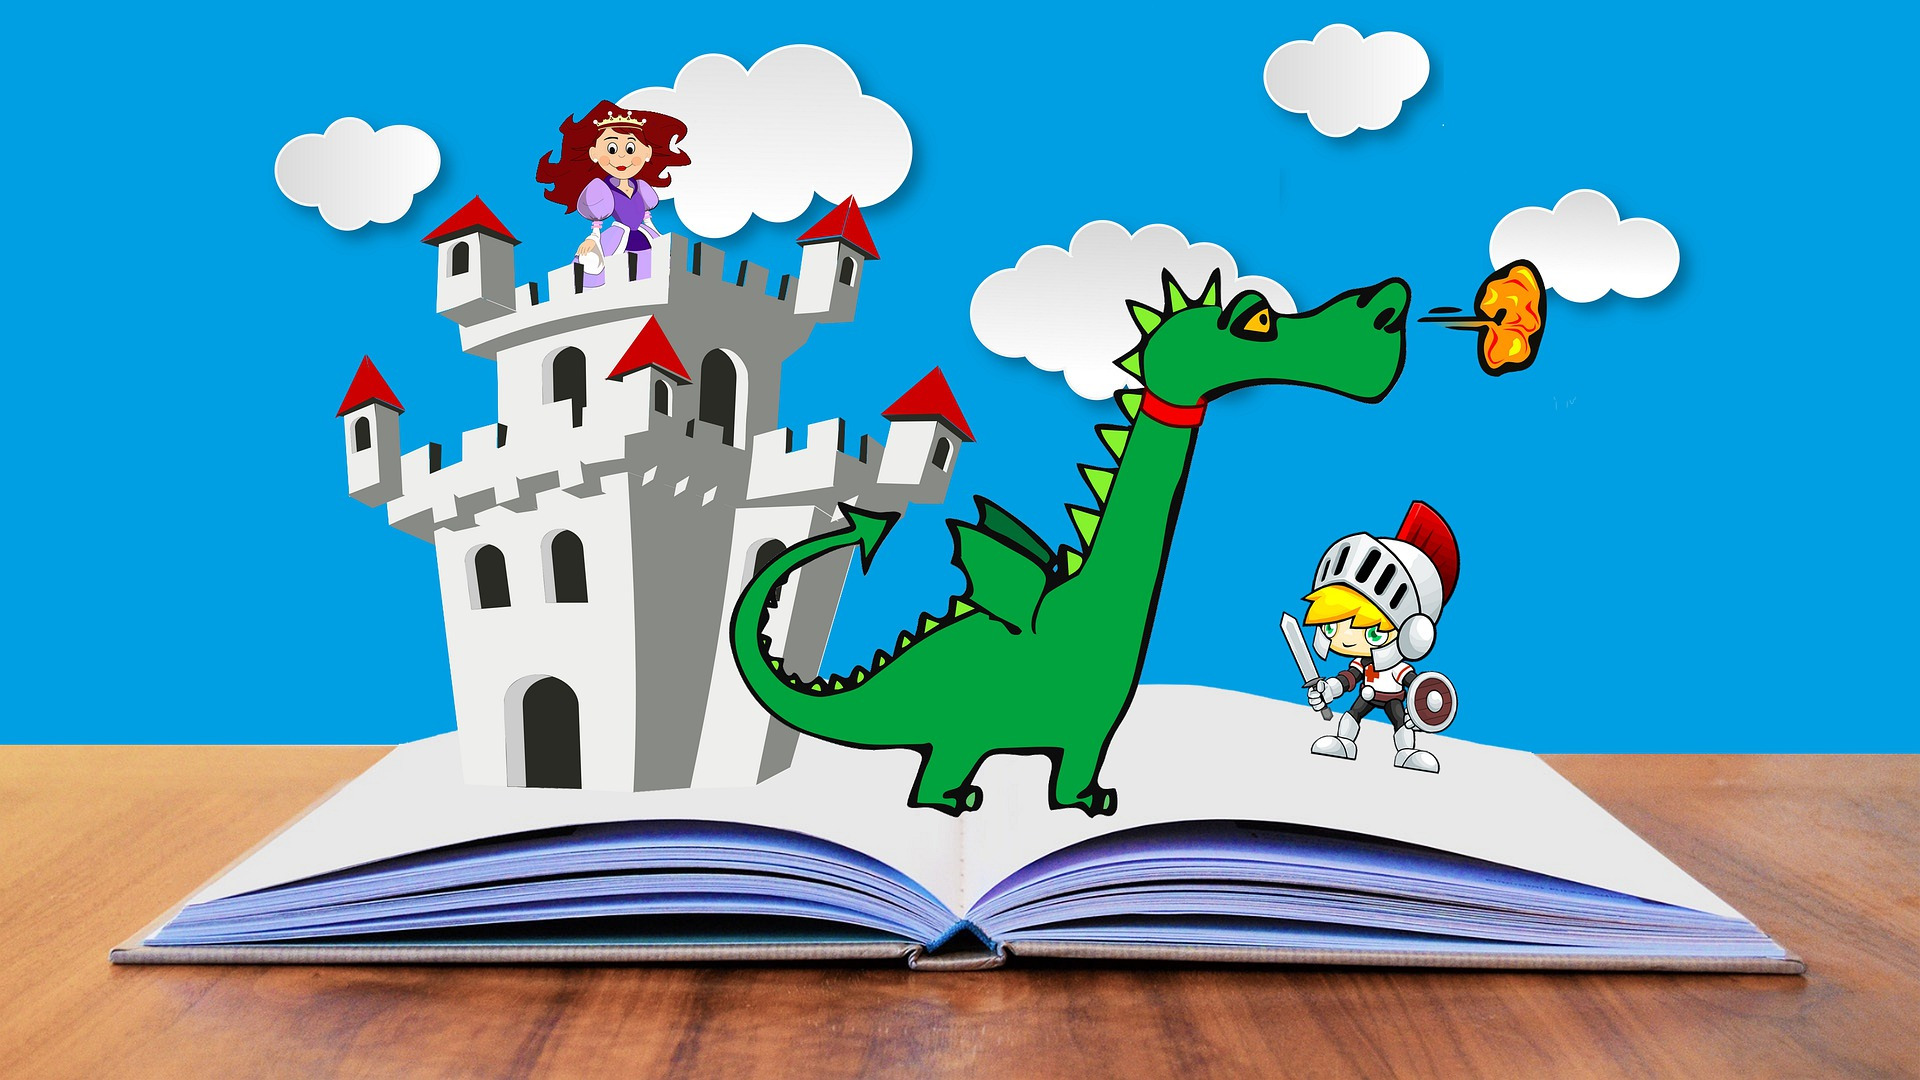 Cartoon type illustration showing a catsle, dinosaur and knight popping up out of the pages of a book.